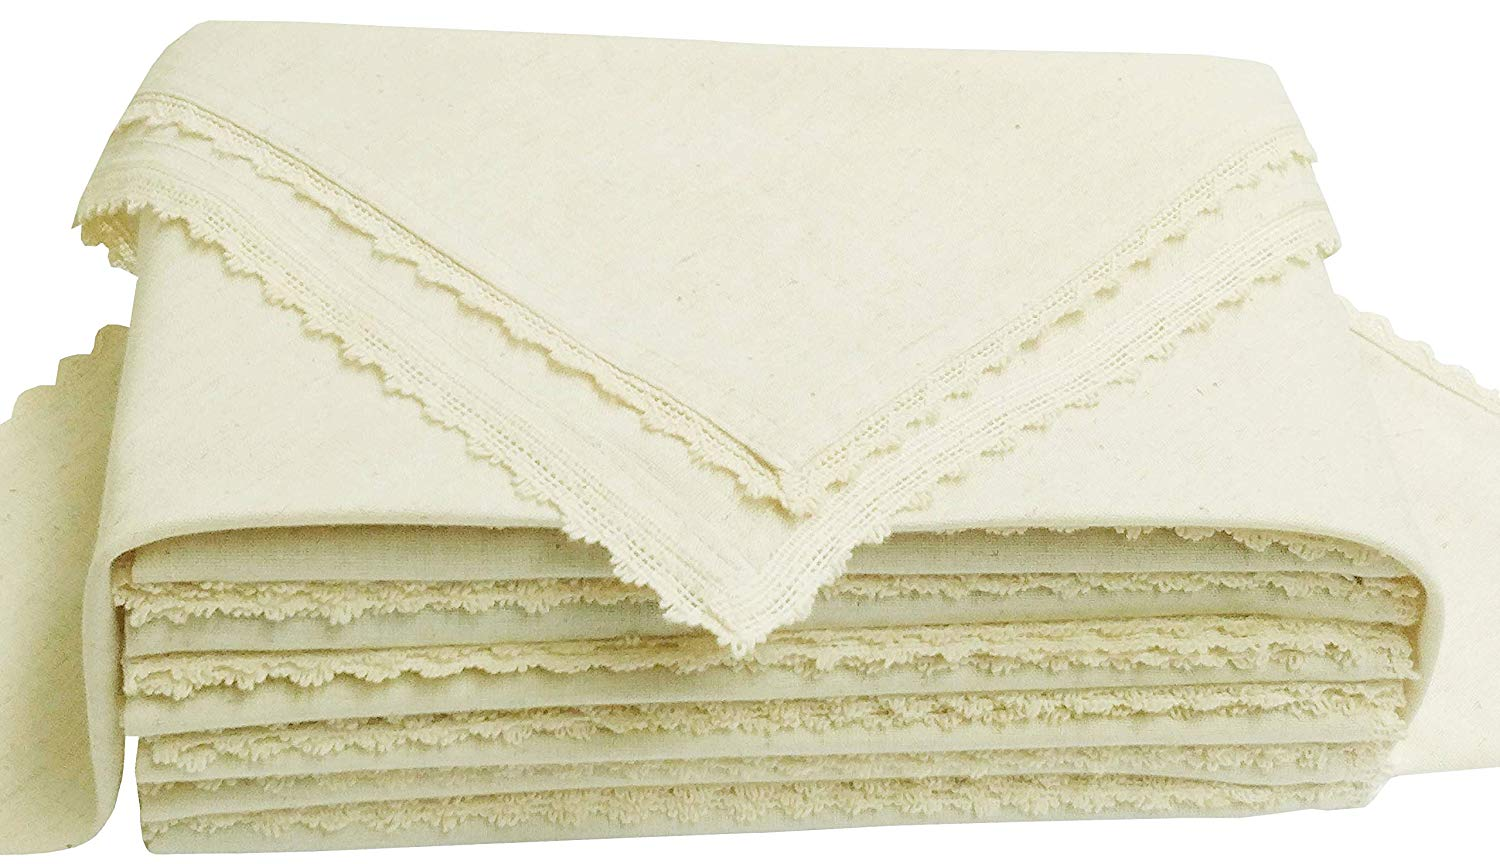 Cloth Dinner Napkins-Flax Cotton-20x20 with Lace -Natural Color,Wedding Napkins,Cocktails Napkins,Dinner Napkins,Decorative Napkins, Mitered Corners, Machine Washable Dinner Napkins Set of 12